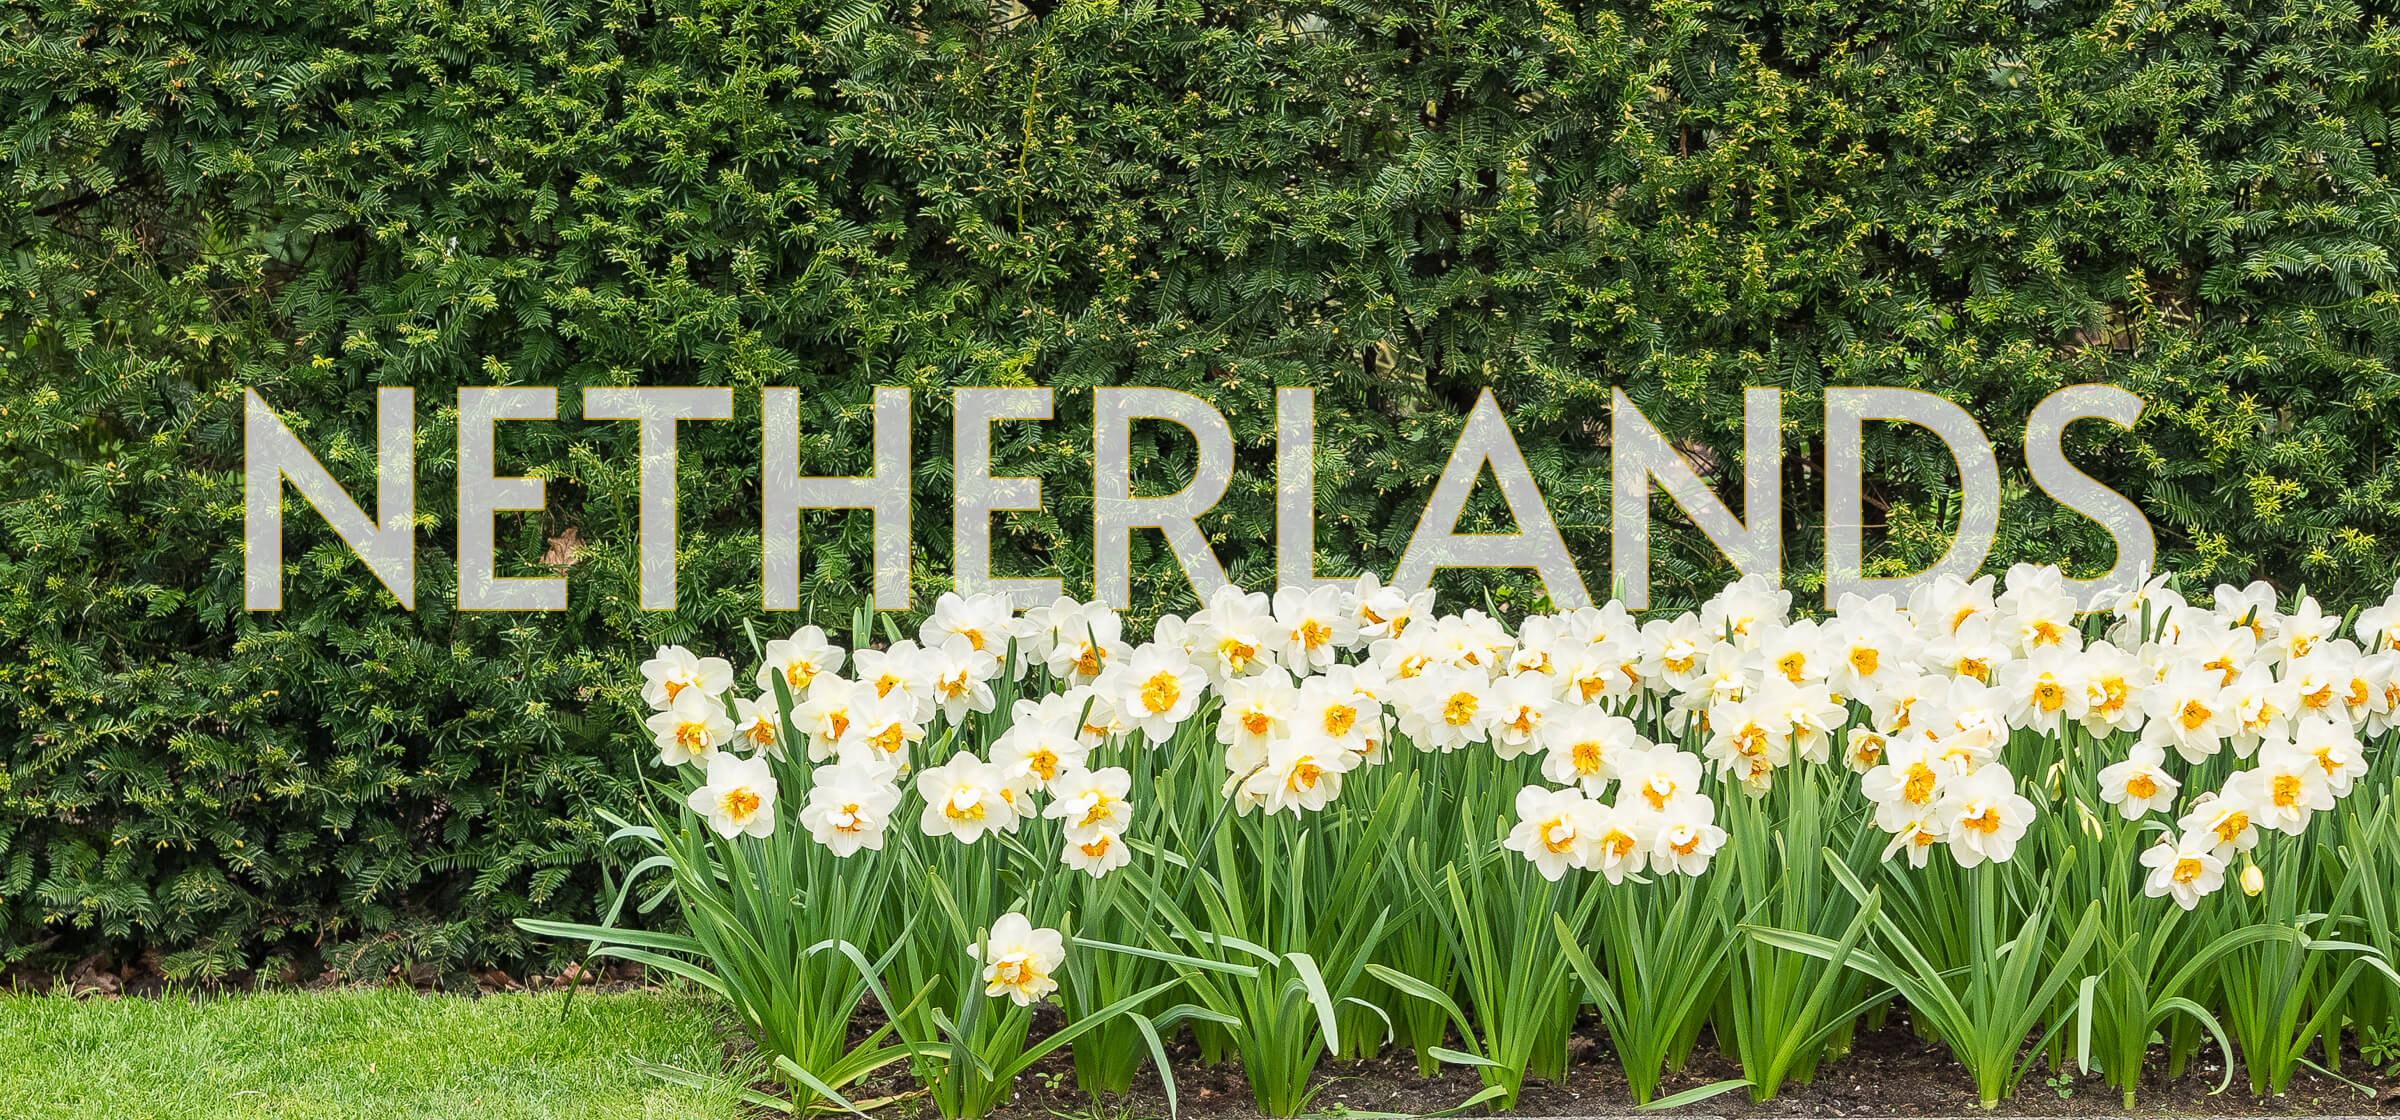 featured image representing the netherlands, a bed of white tulips and a hedge